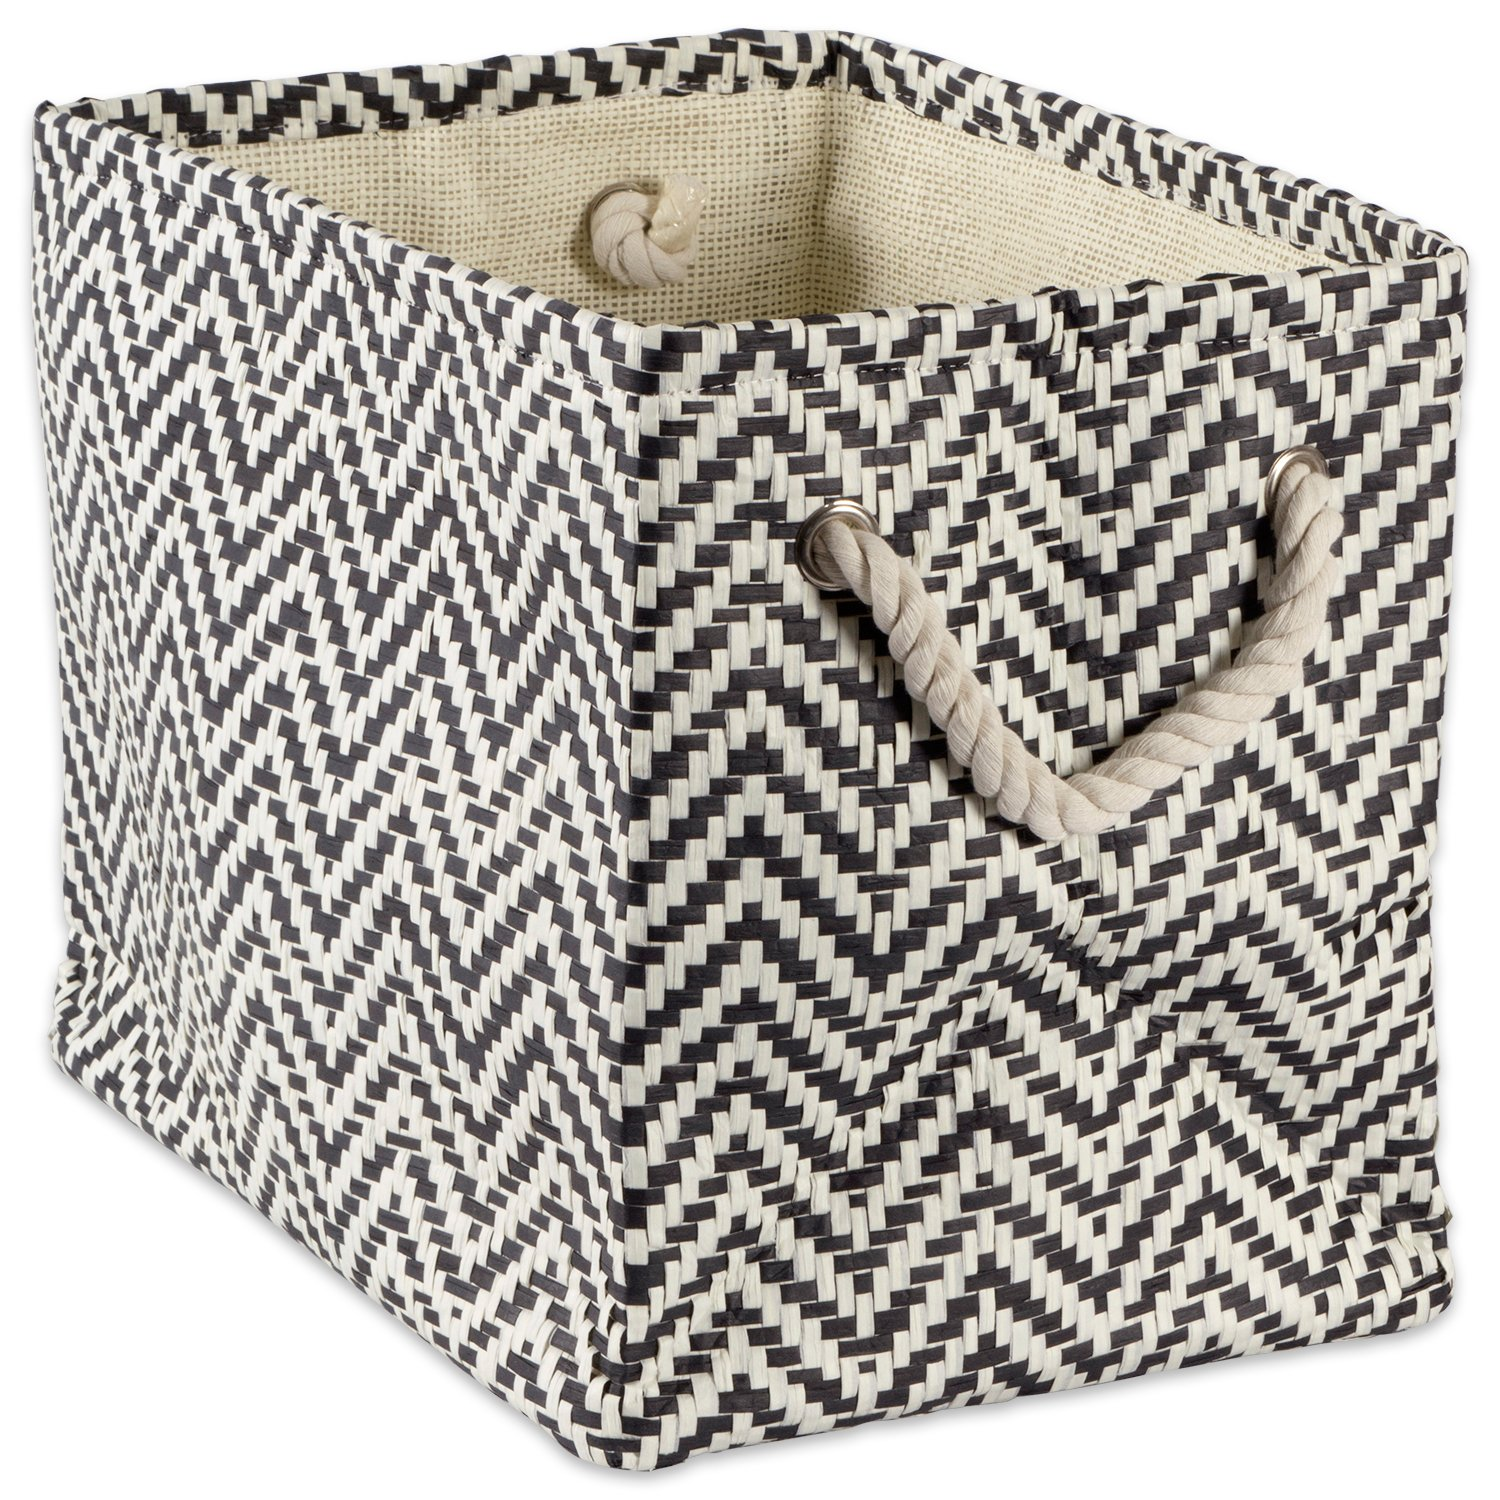 """DII Woven Paper Storage Basket or Bin, Collapsible & Convenient Home Organization Solution for Office, Bedroom, Closet, Toys, & Laundry (Small - 11x10x9""""), Black Chevron"""